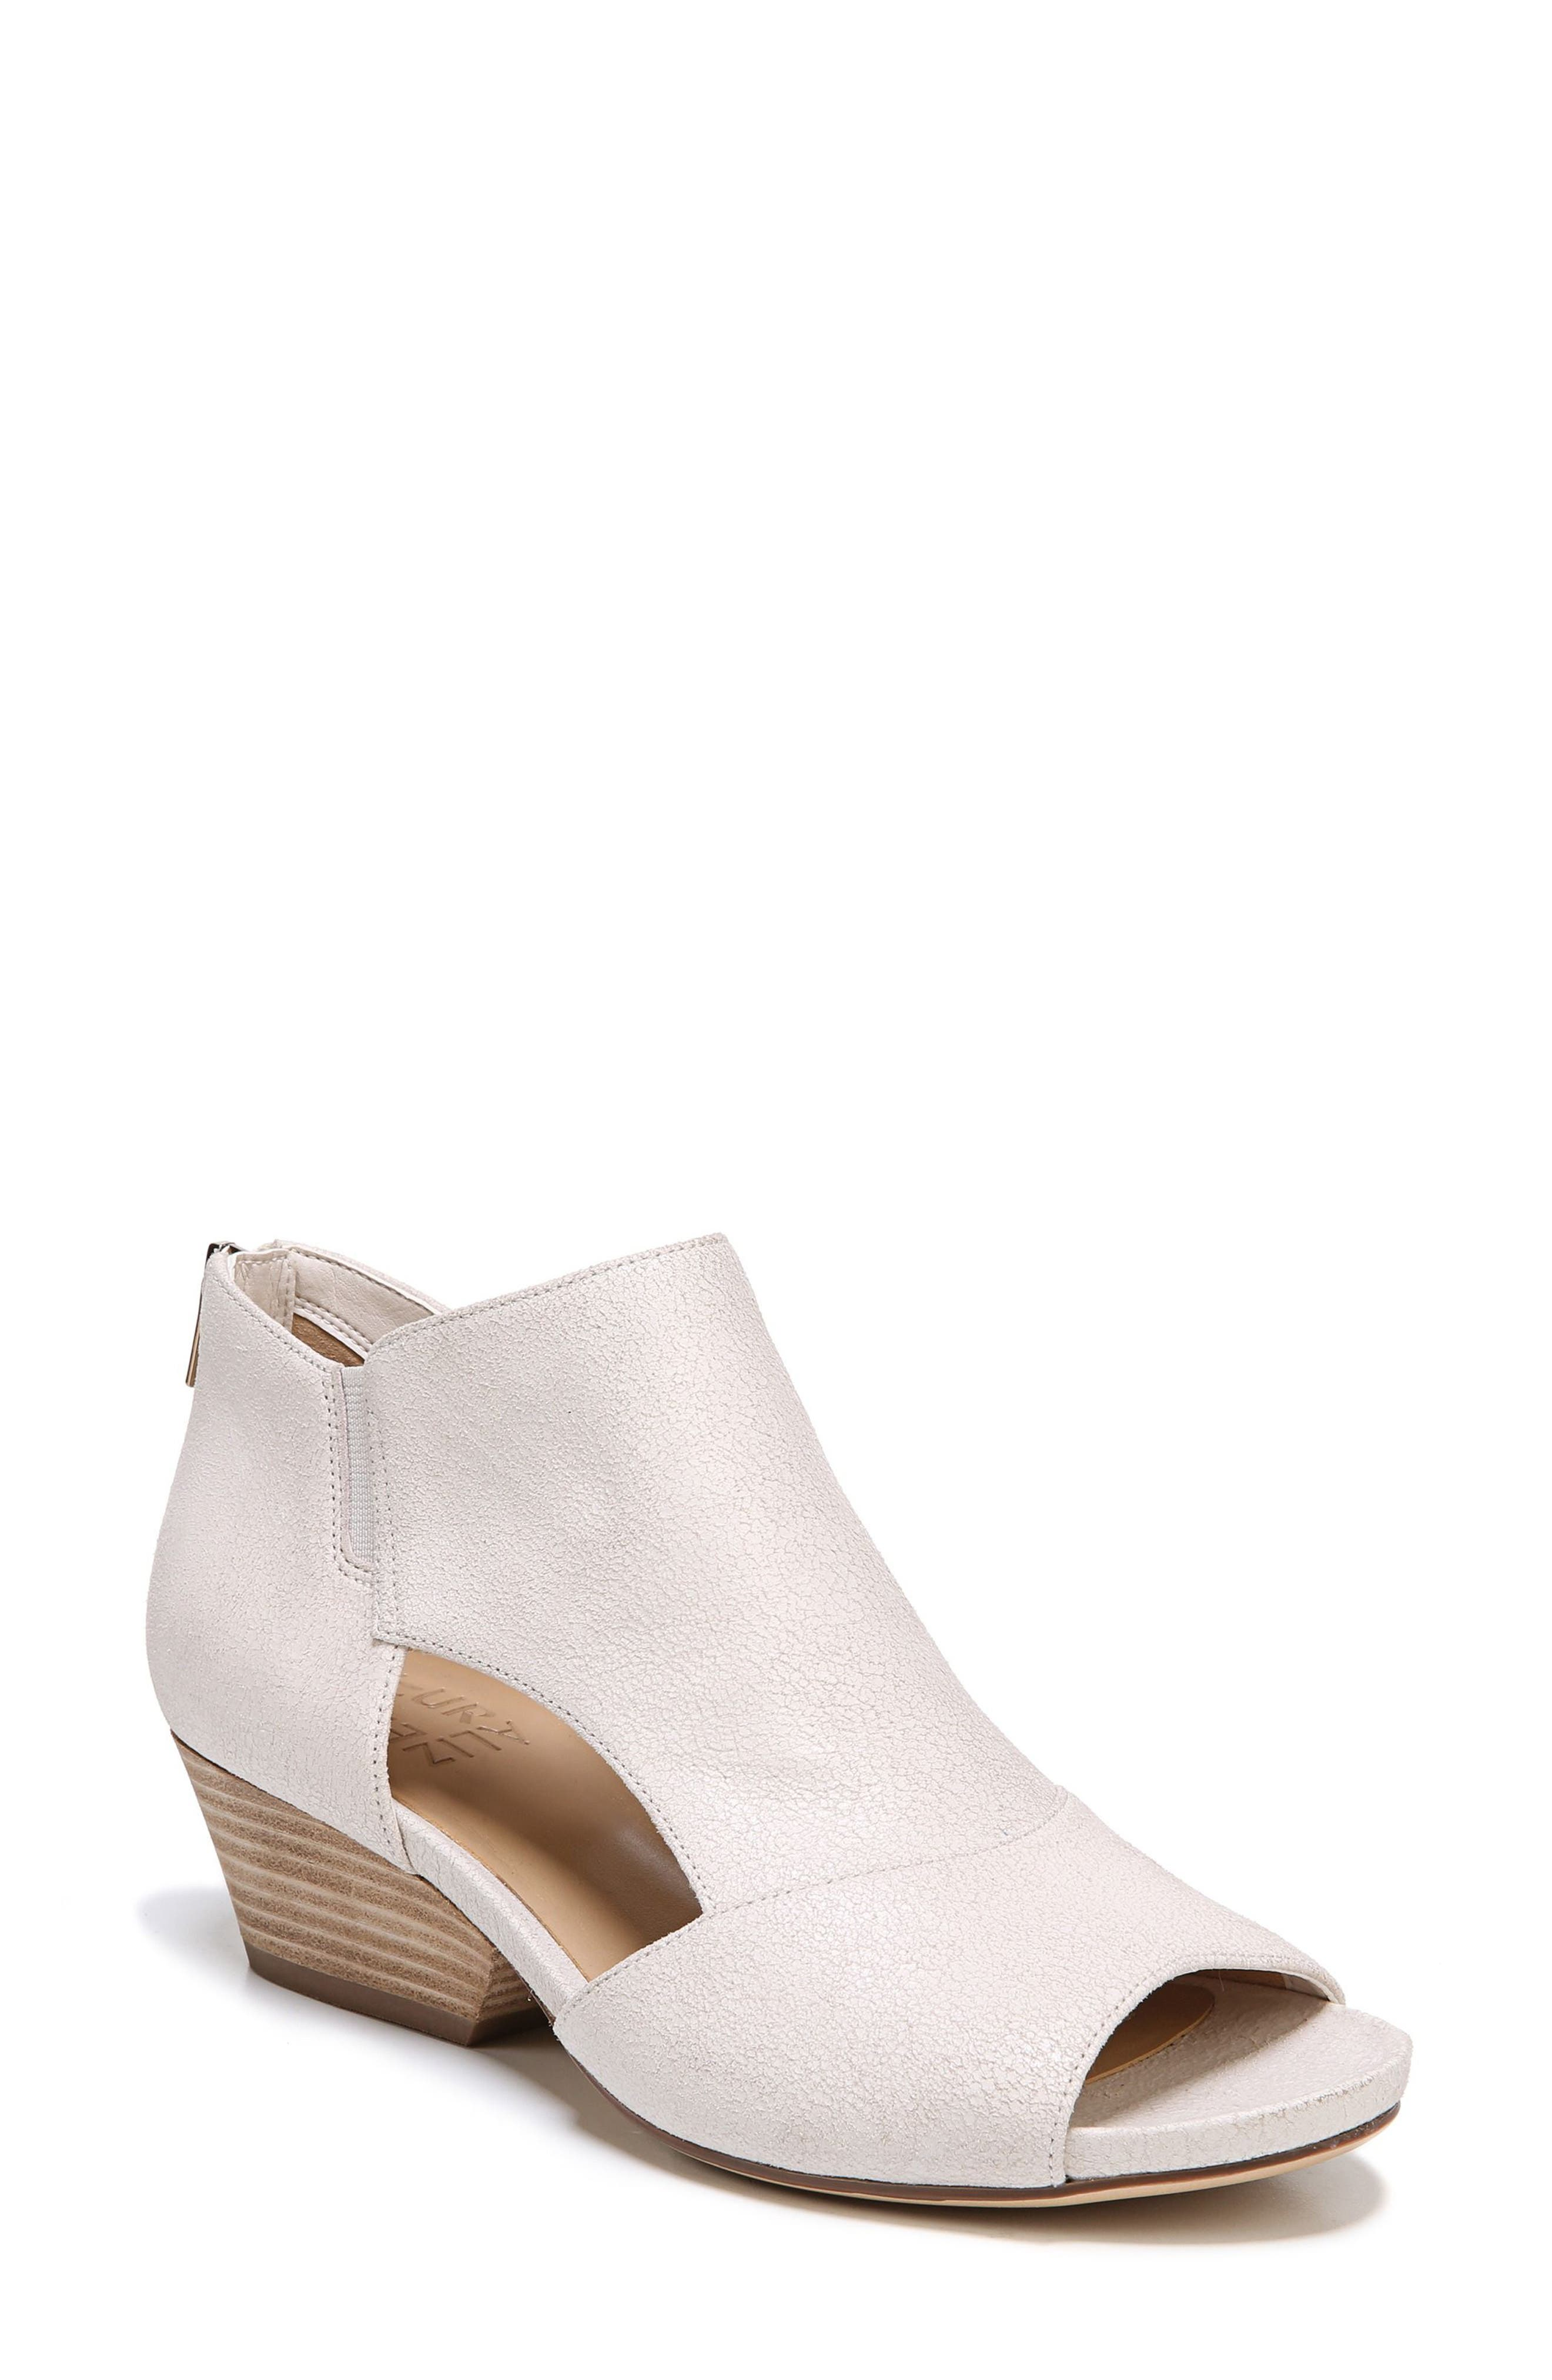 Alternate Image 1 Selected - Naturalizer Greyson Open Toe Bootie (Women)